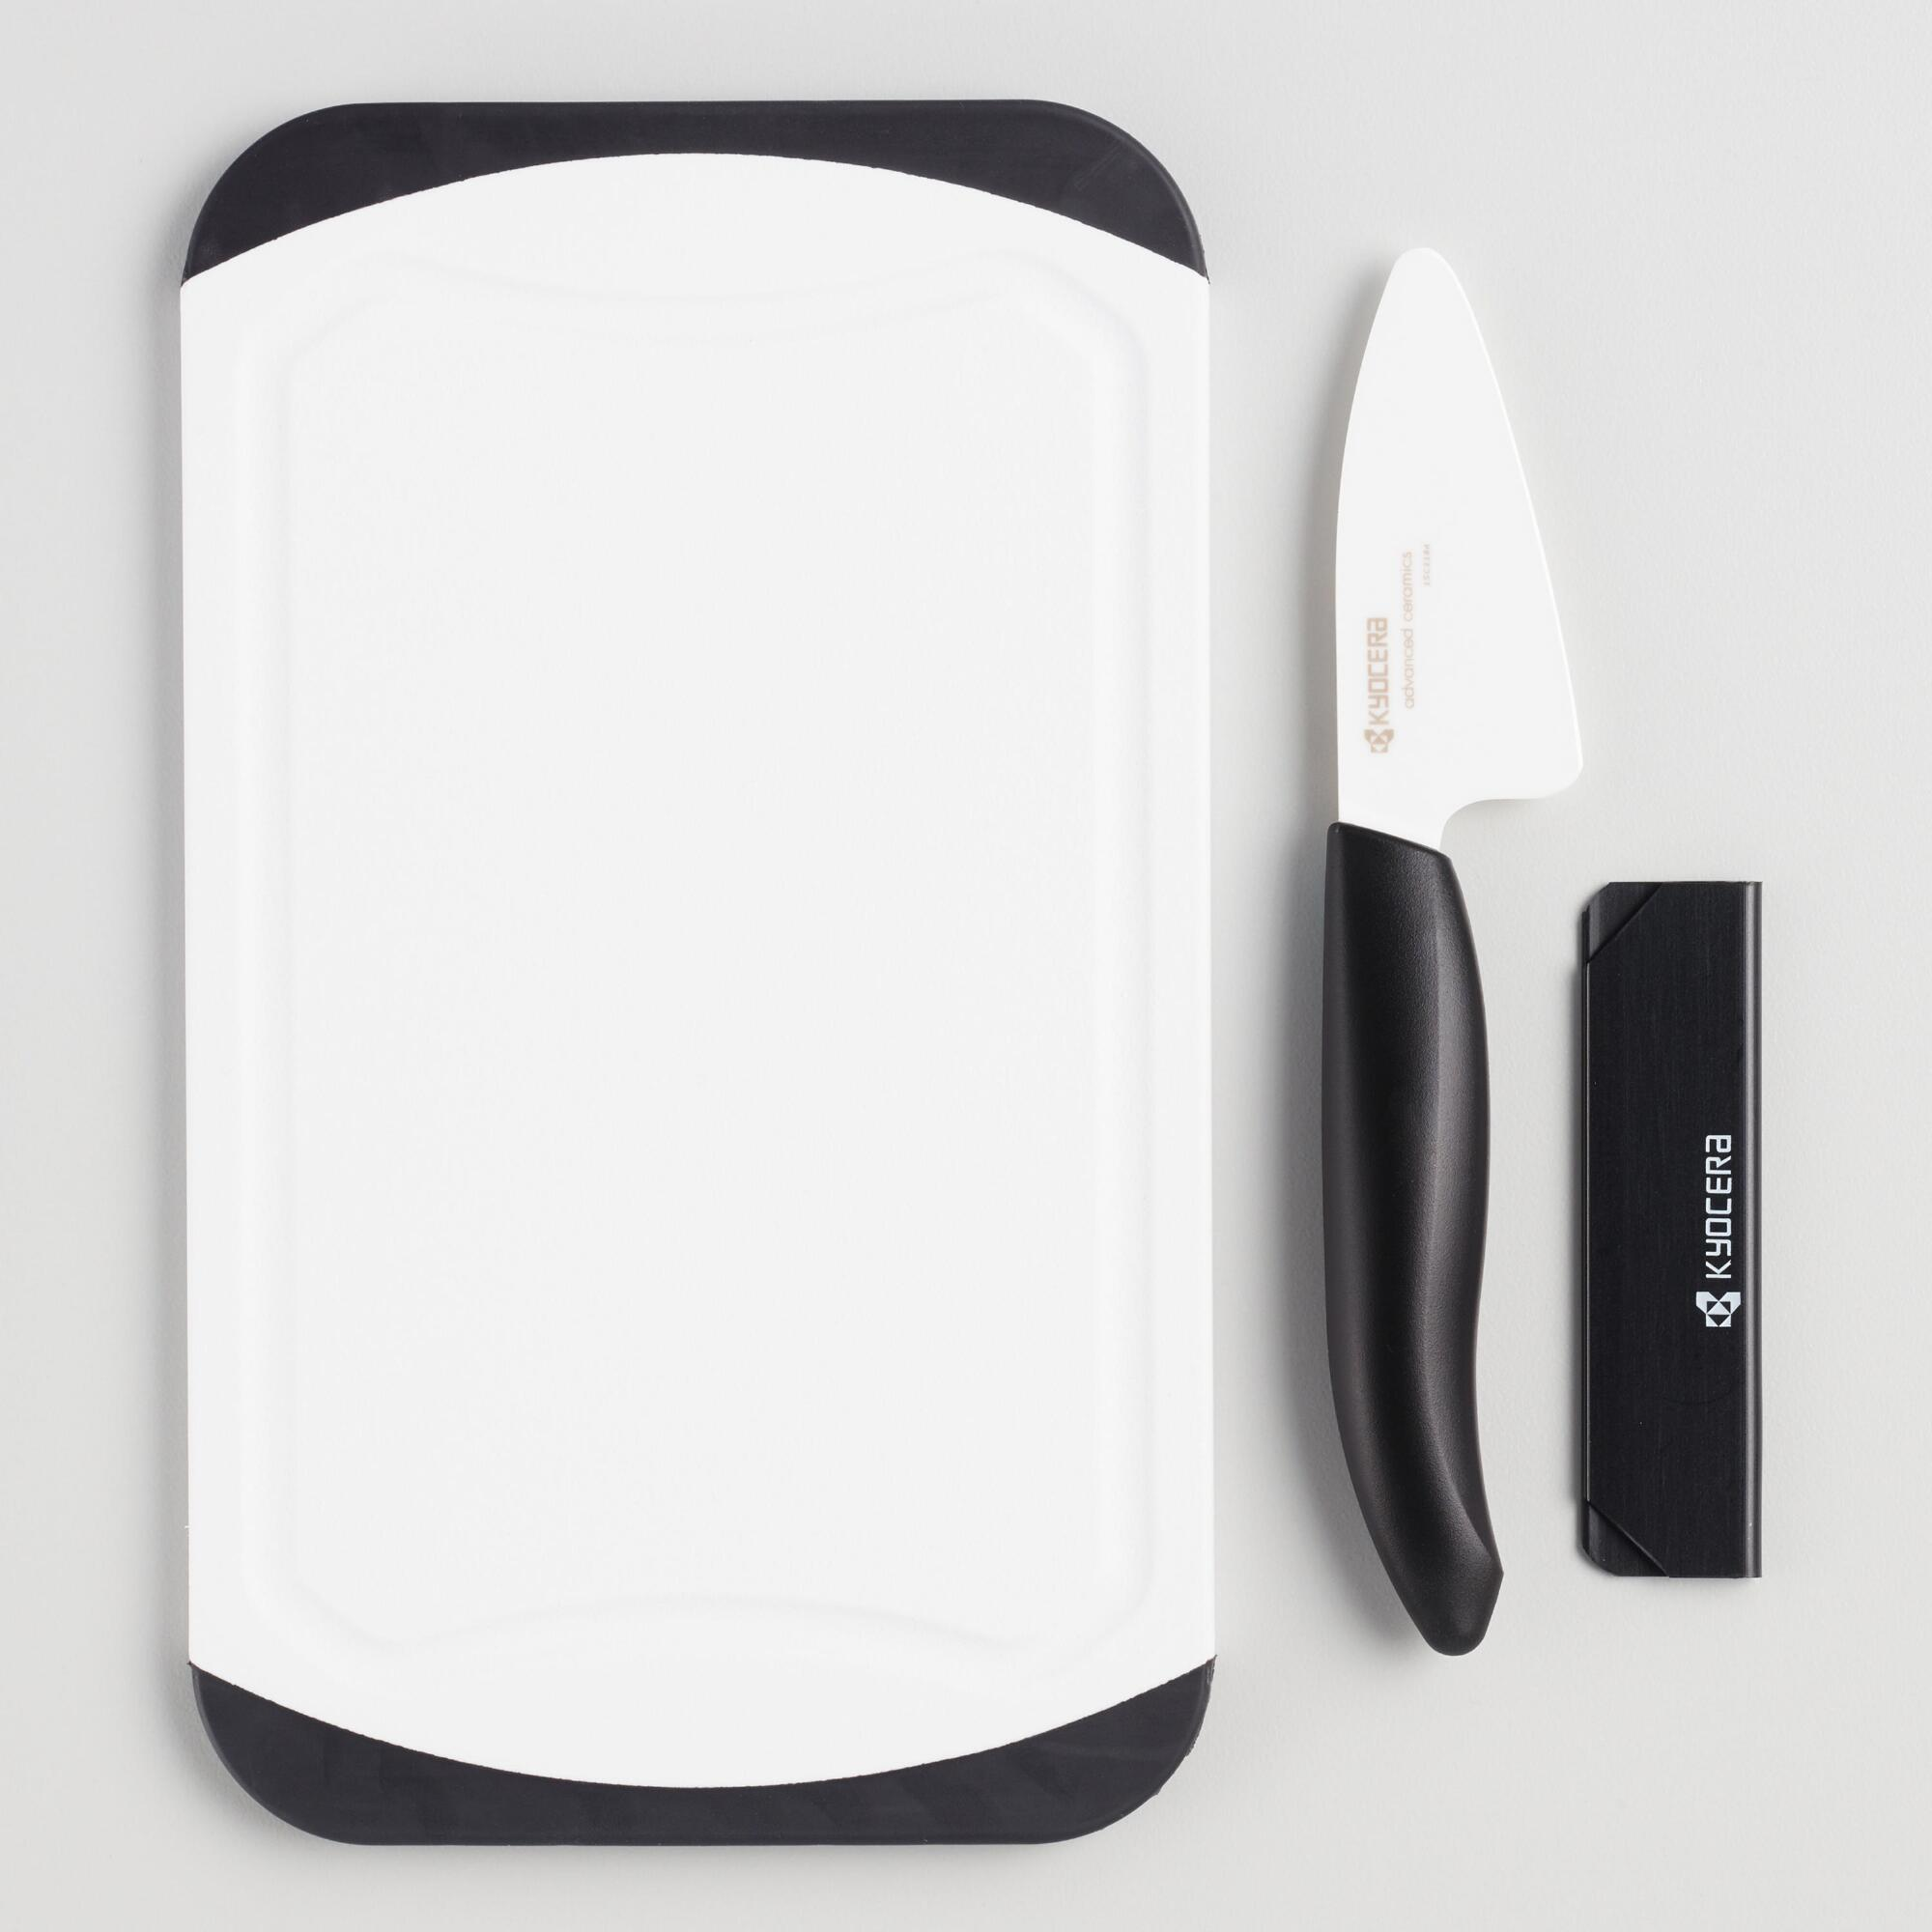 Kyocera Ceramic Mini Prep Knife and Cutting Board Set by World Market